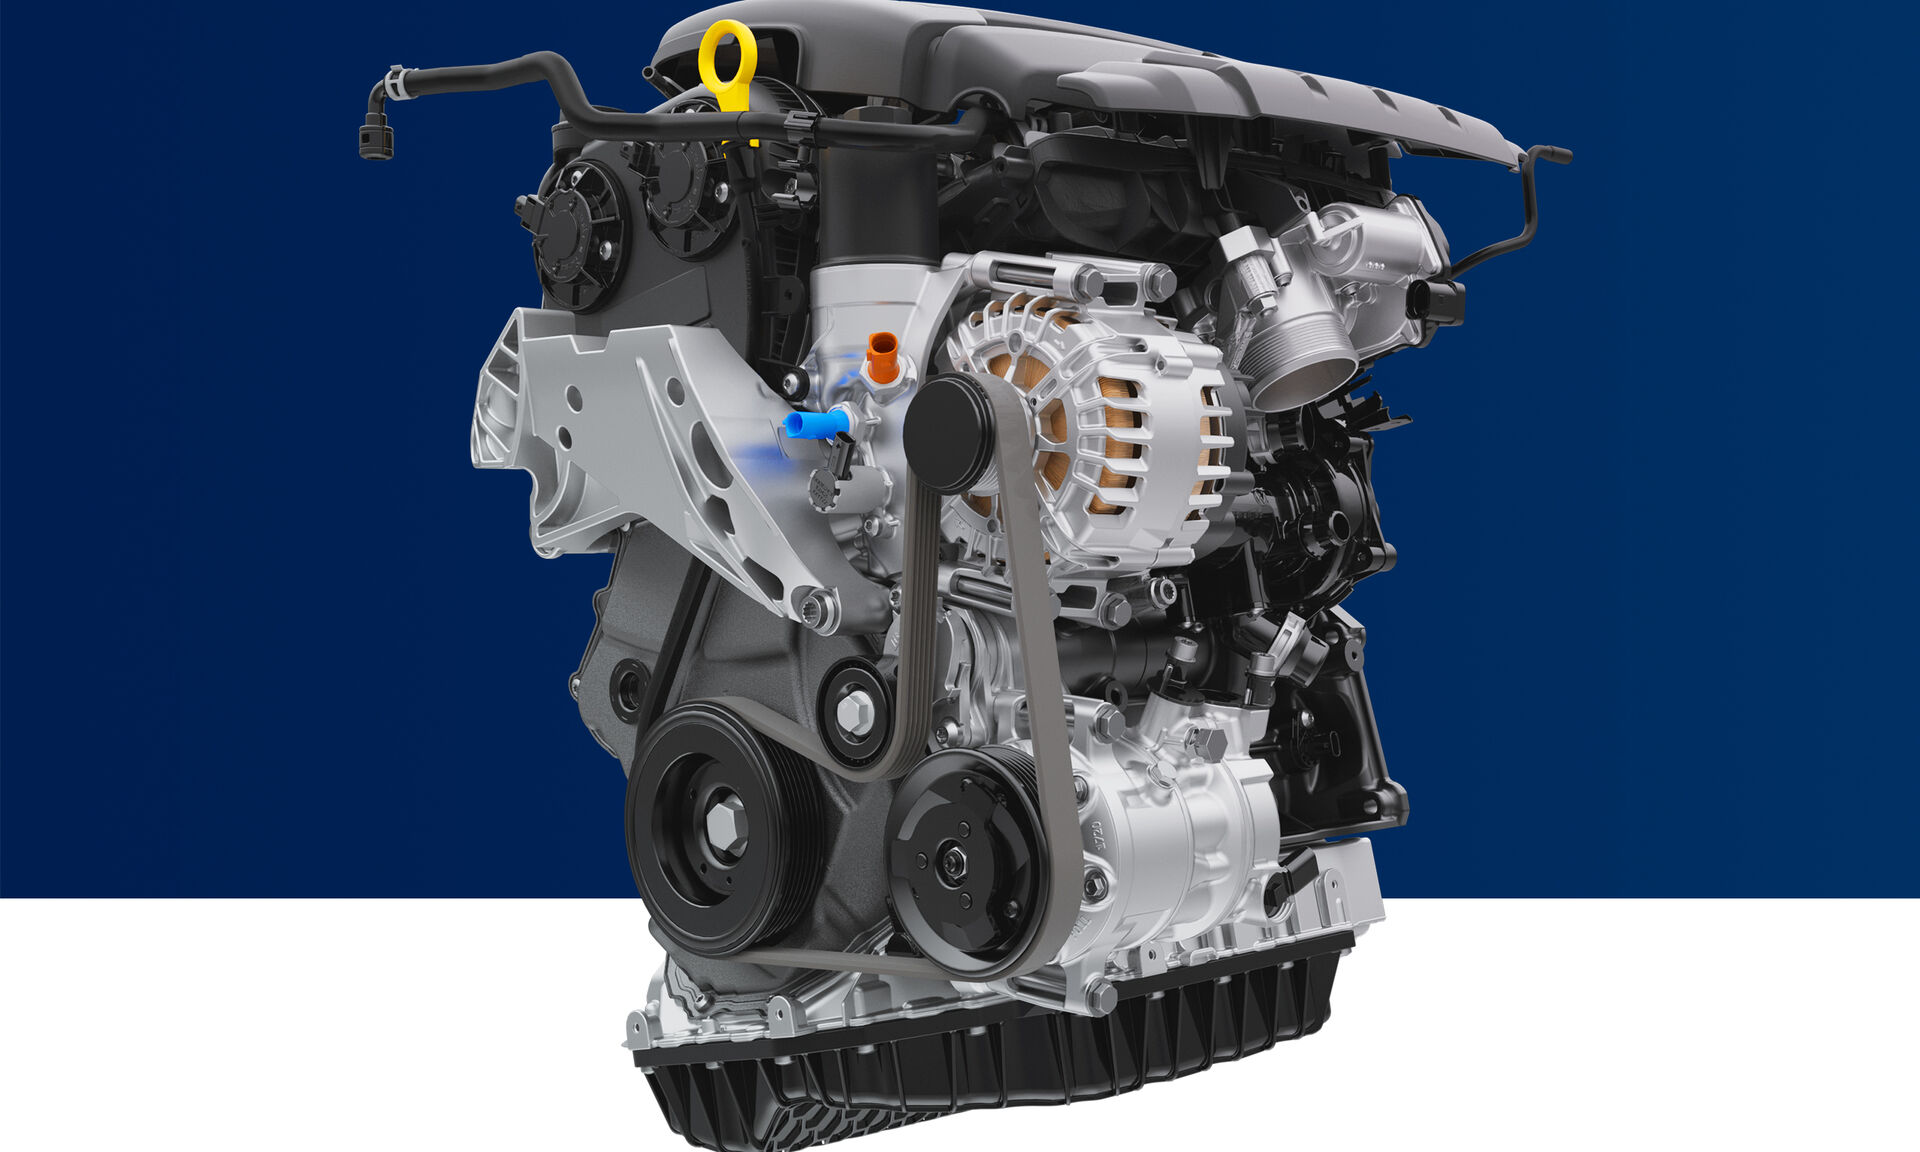 Volkswagen Engine | VW Parts and Accessories